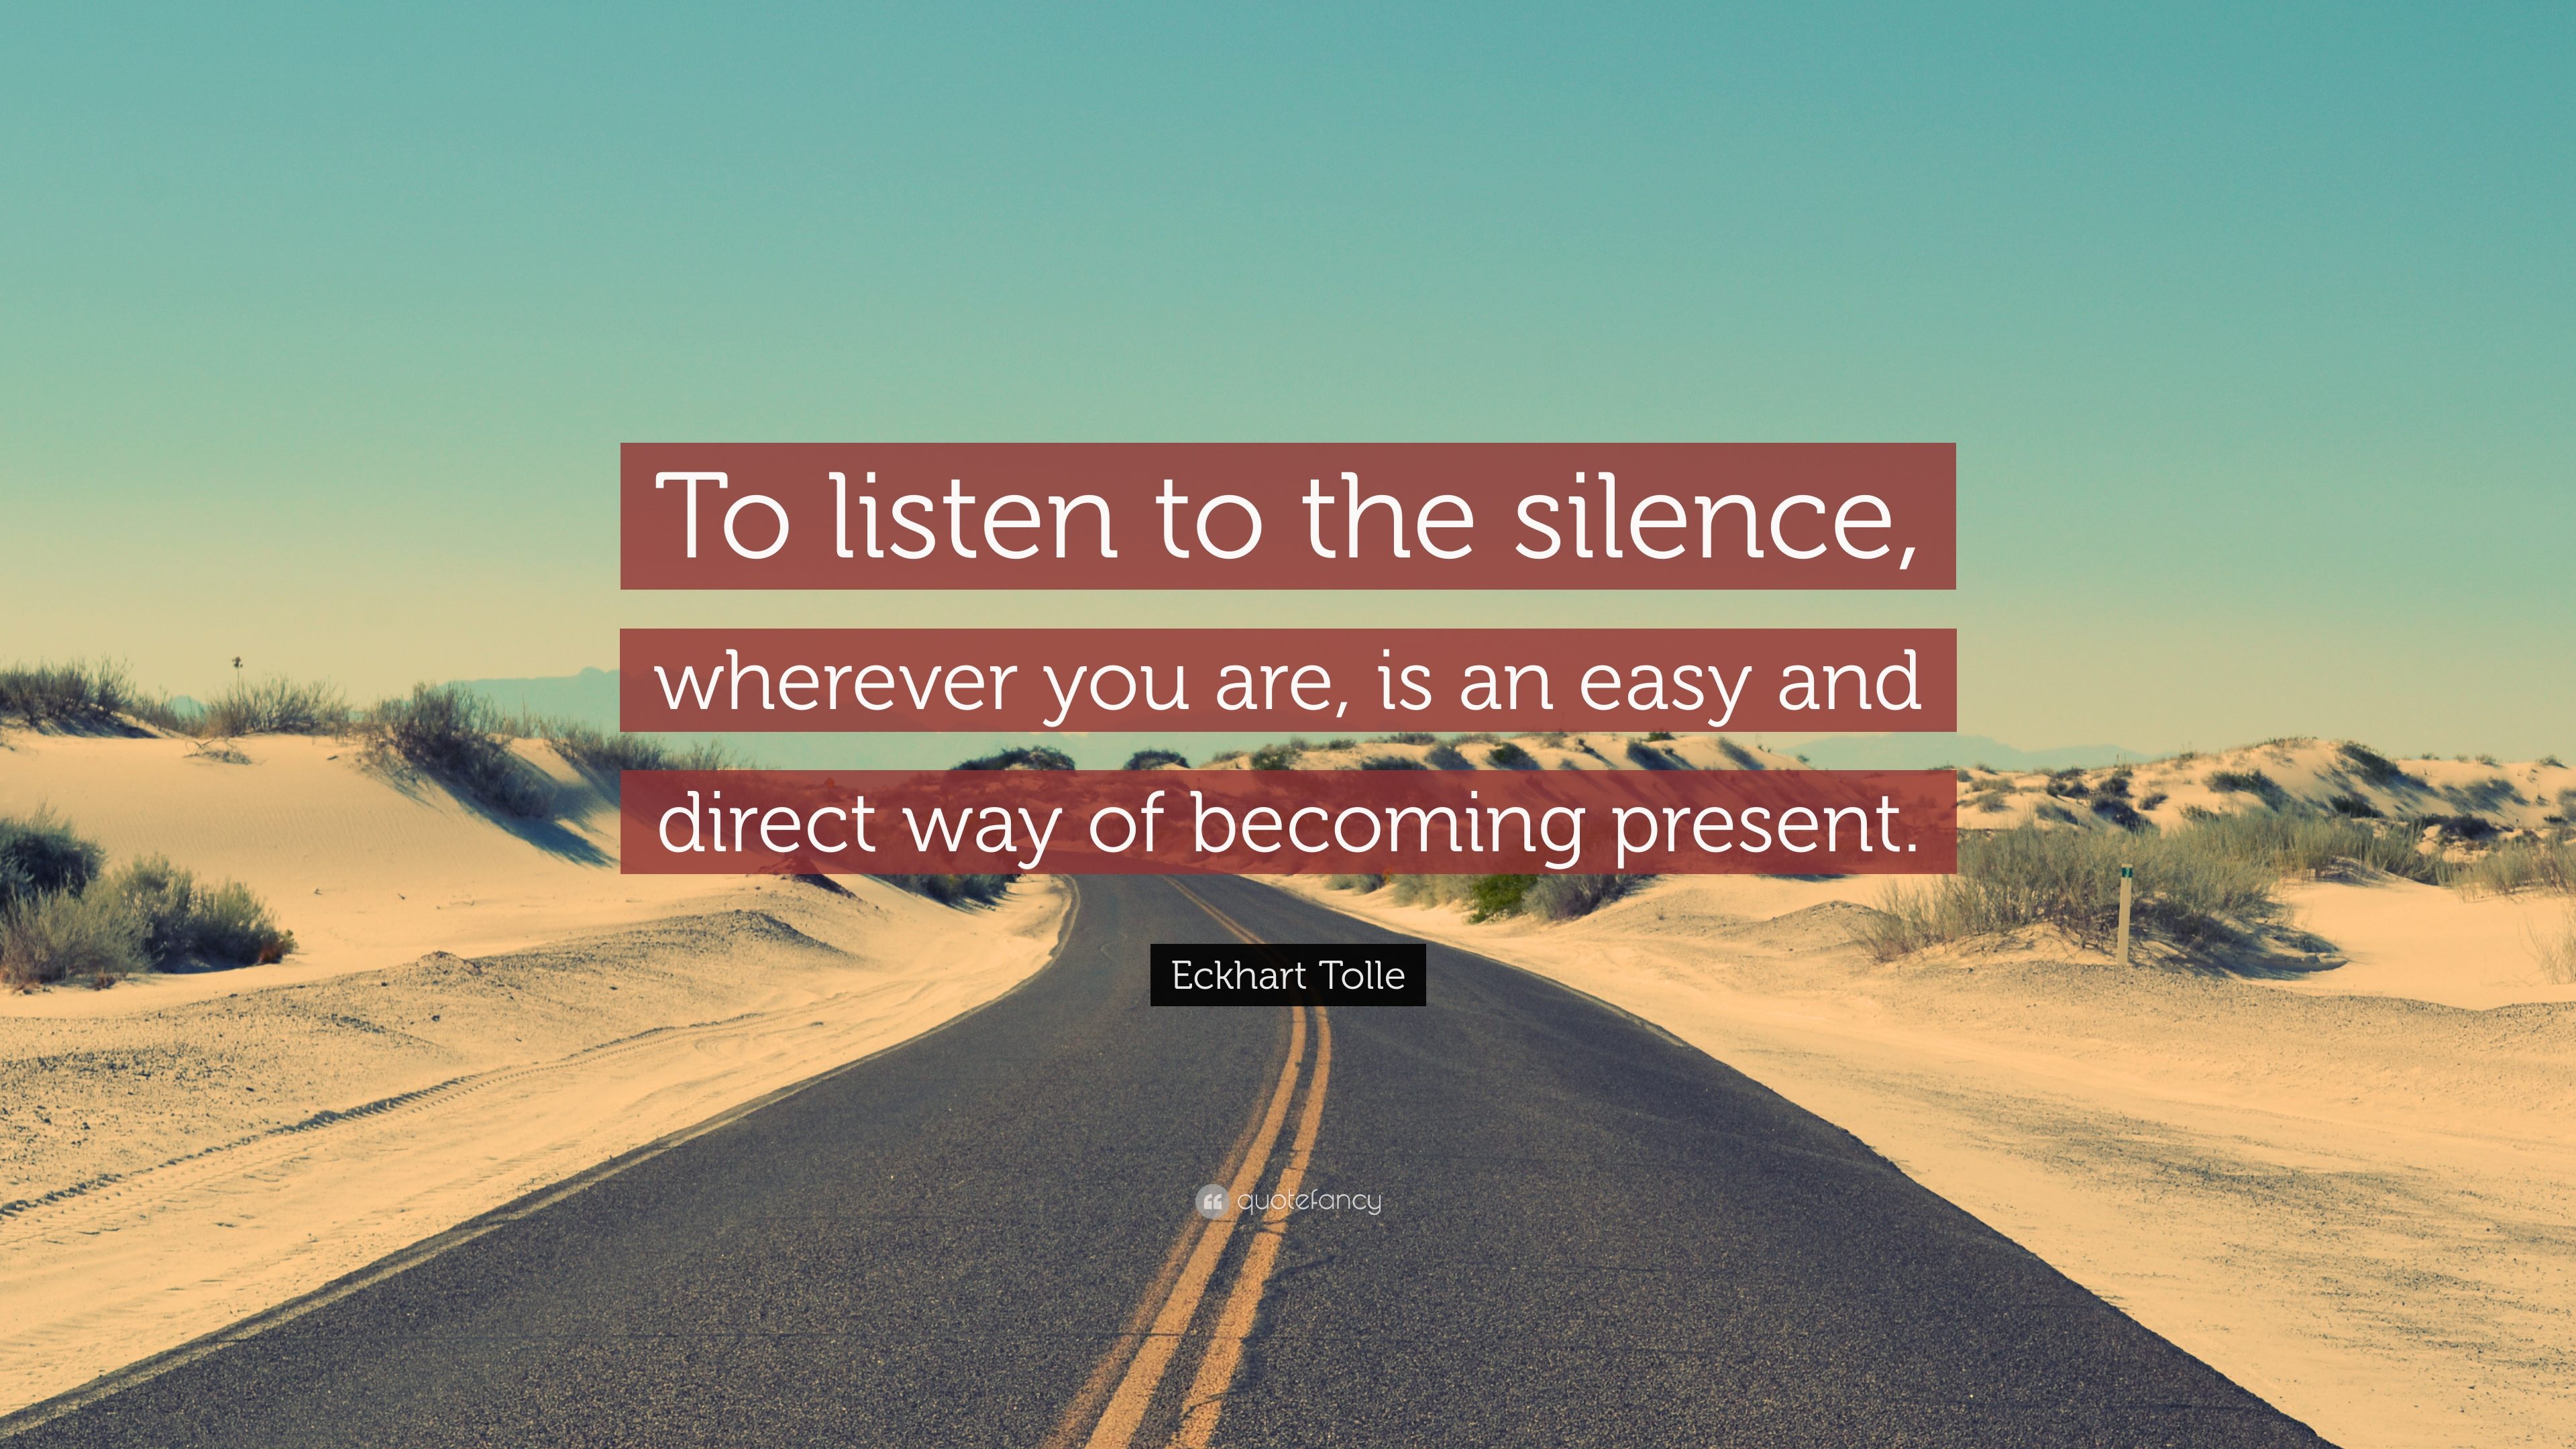 1897725-Eckhart-Tolle-Quote-To-listen-to-the-silence-wherever-you-are-is